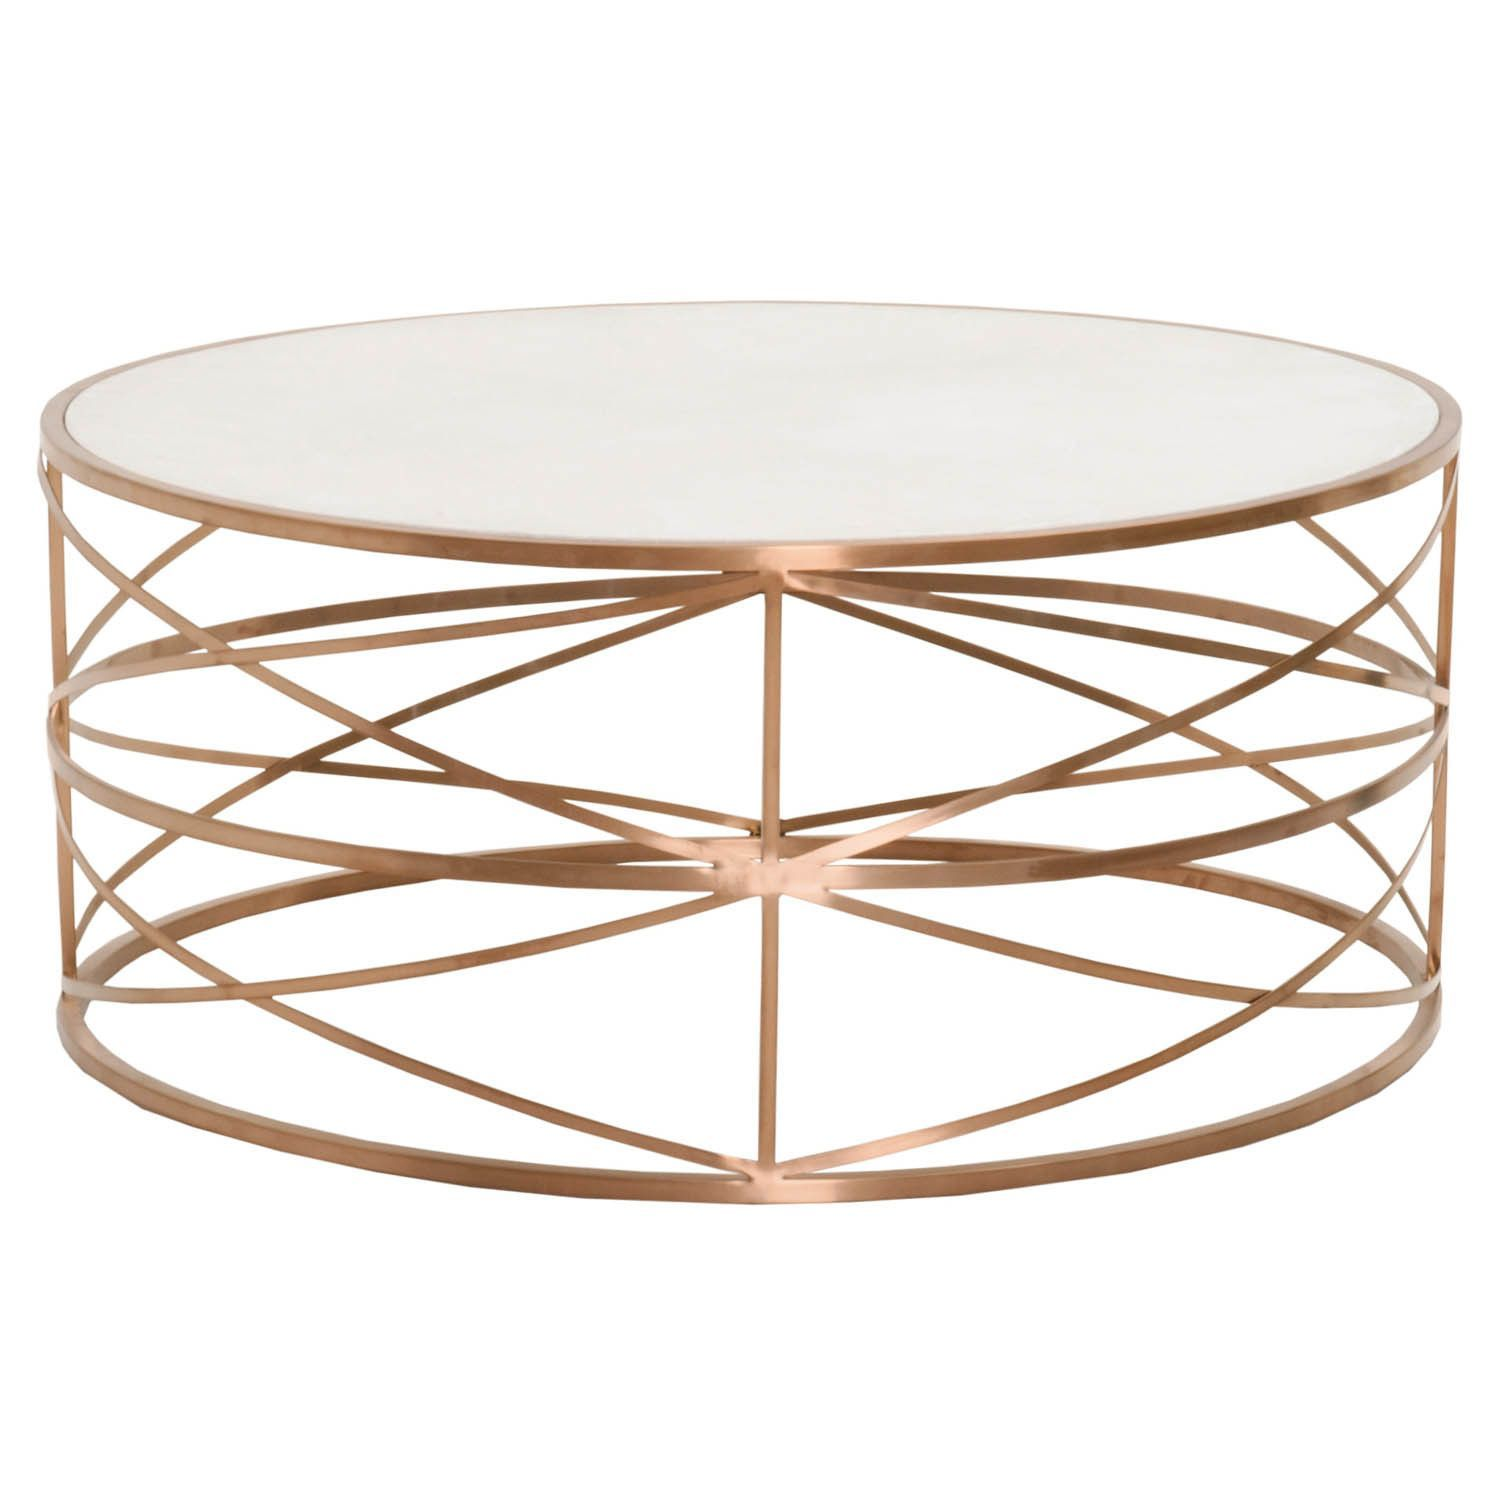 melrose round coffee table brushed rose gold living room accent phoenix furniture lamps brass nest tables bench white end contemporary marble dining trestle height very narrow